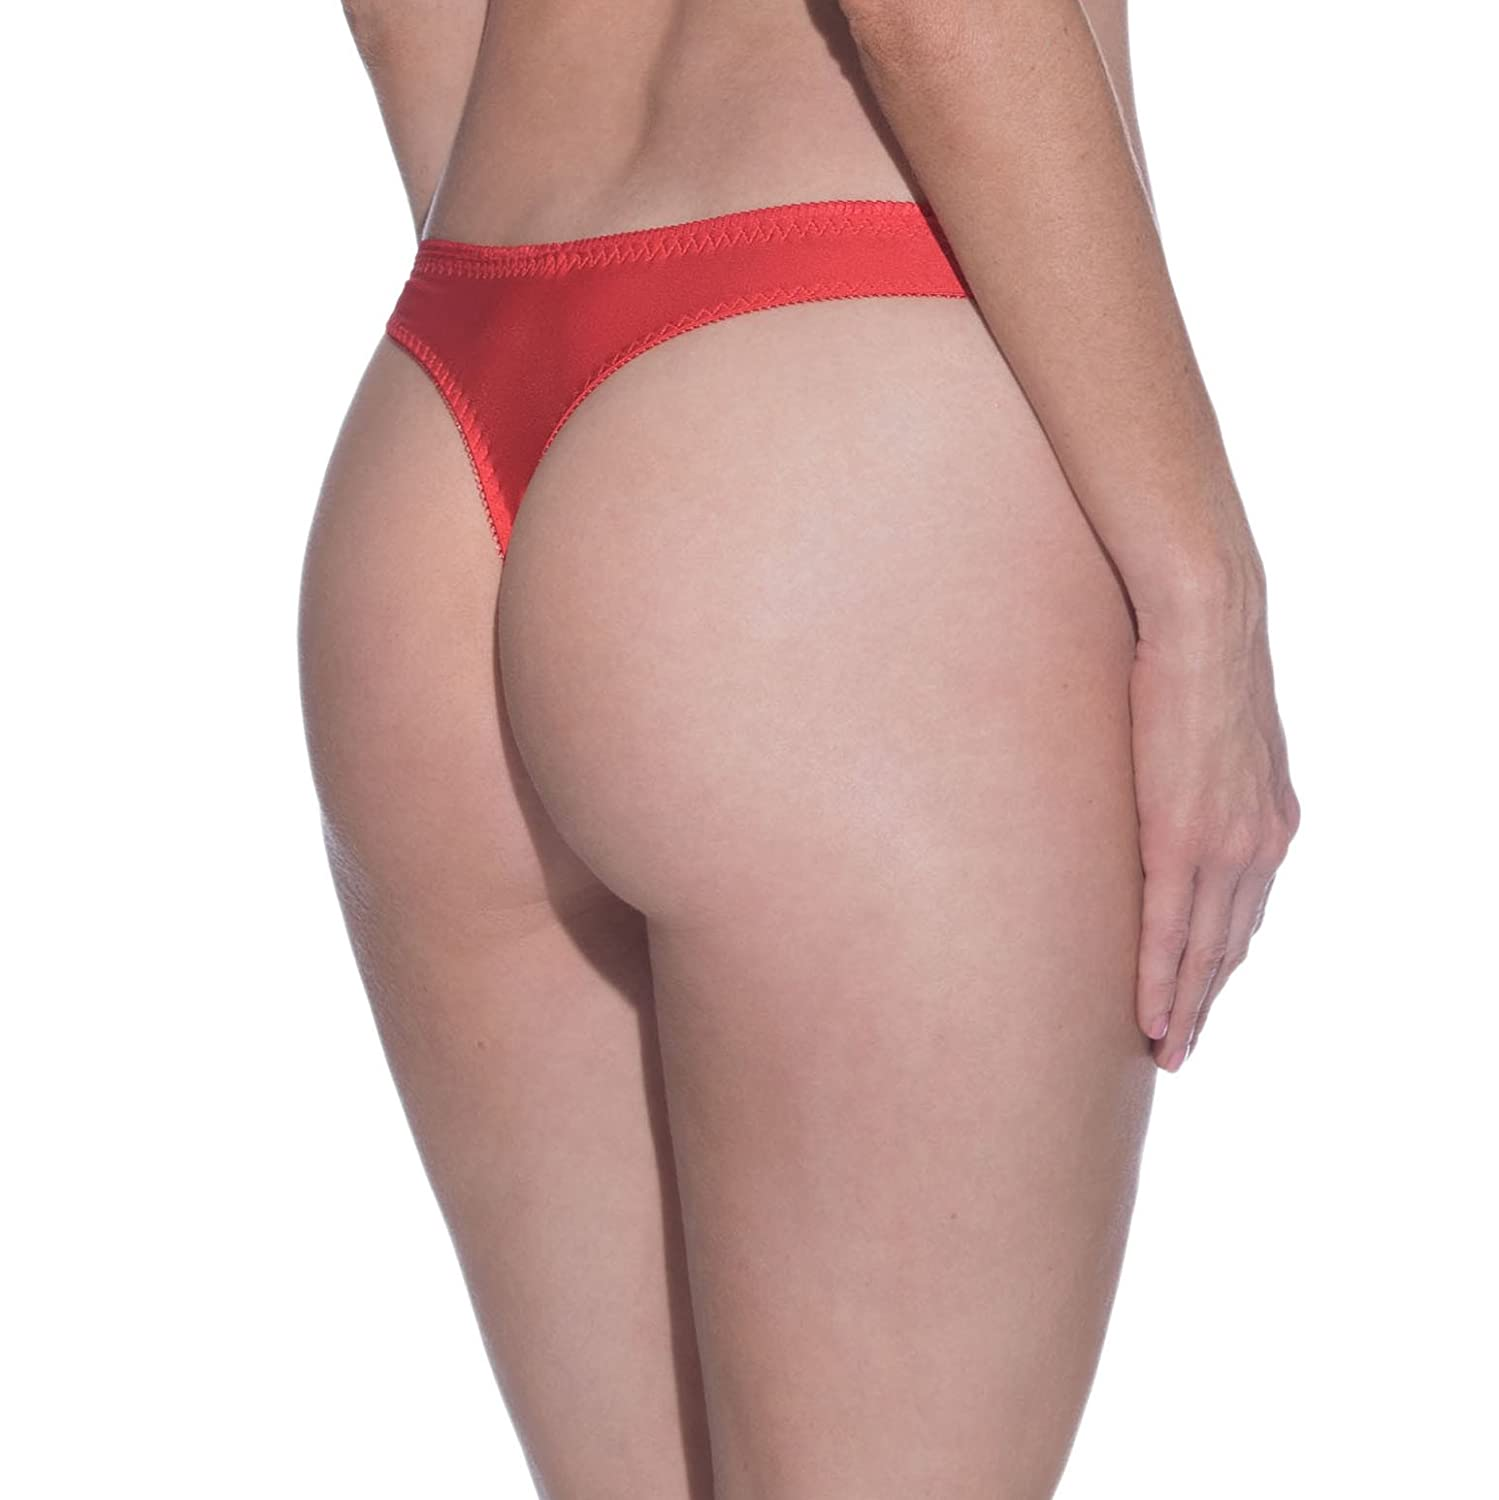 Playboy Women's Forget Me Not G-string Panty (Red)